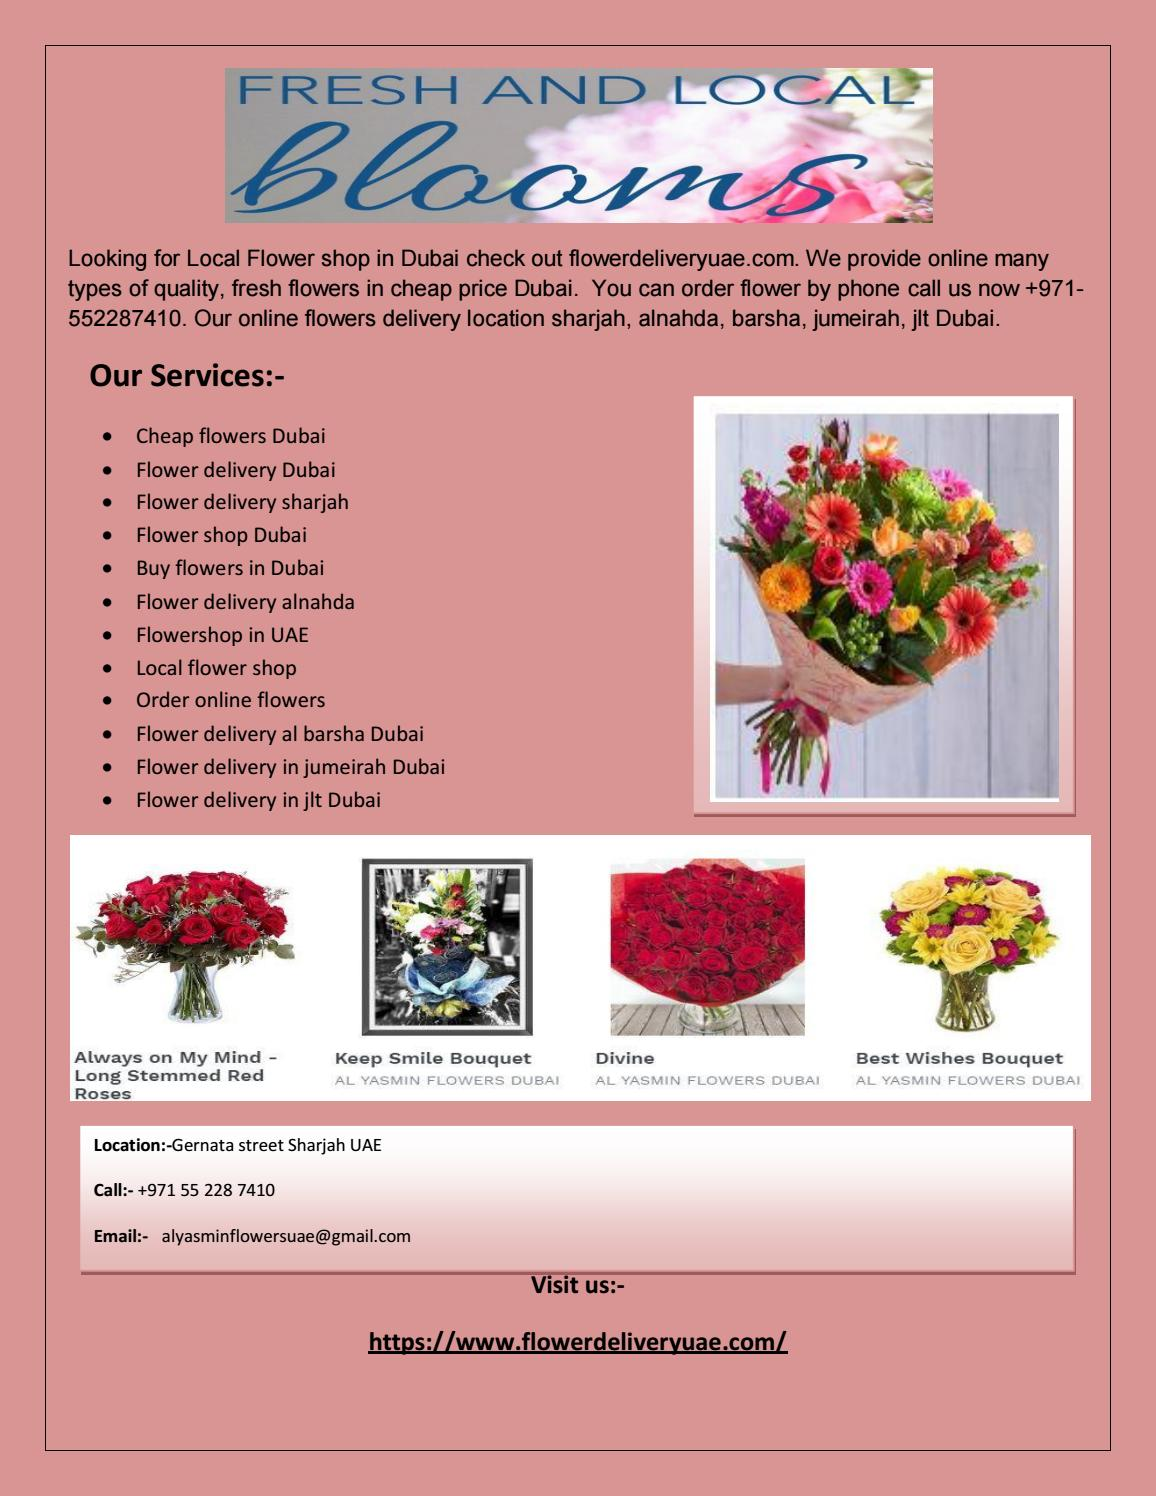 Order Flowers From 79 Aed Your Local Flower Shop In Uae By